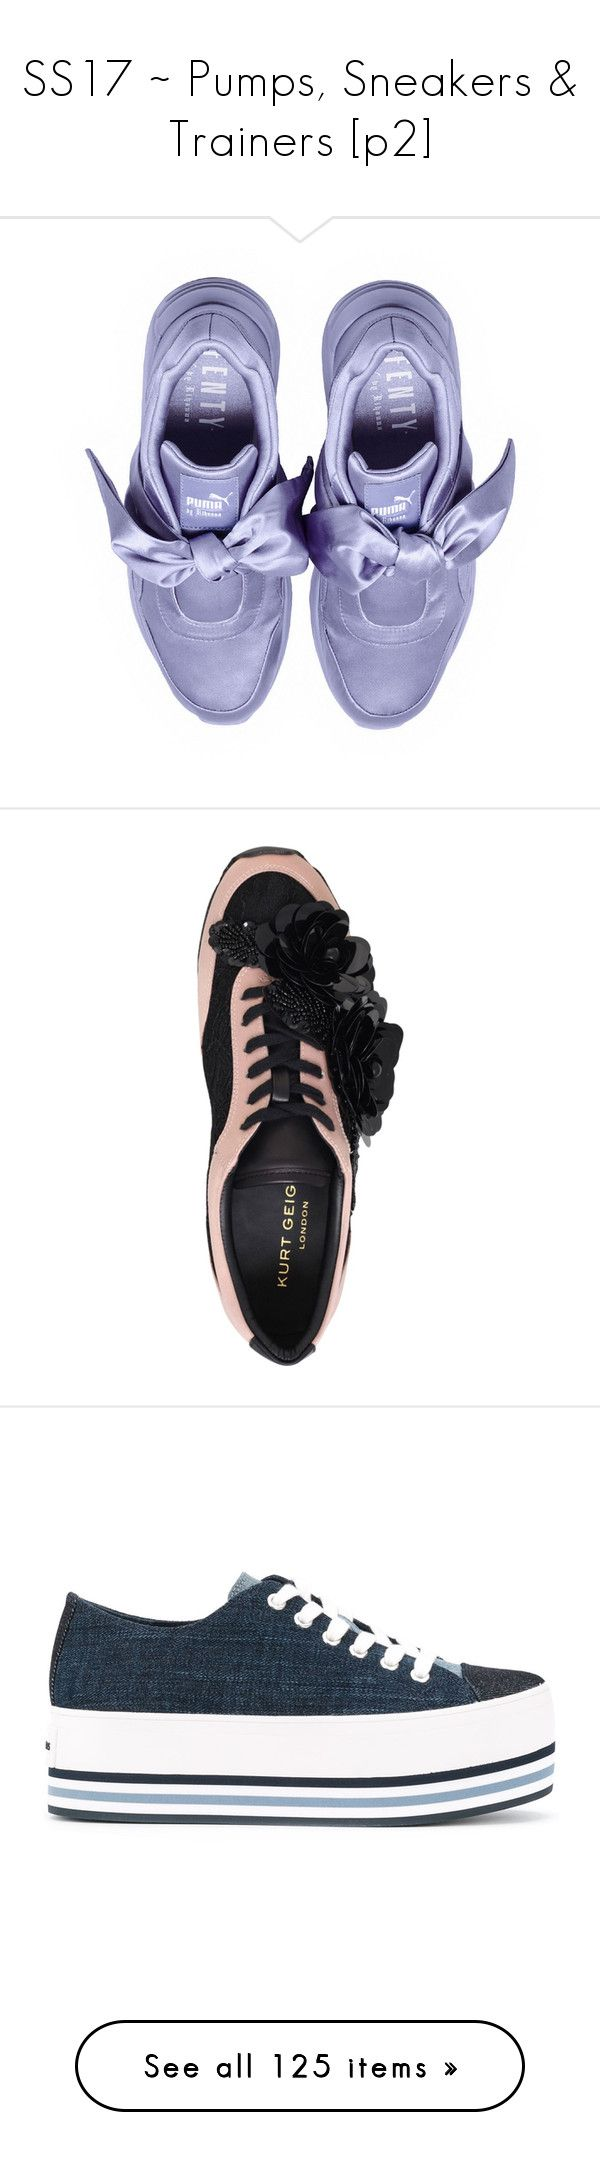 """""""SS17 ~ Pumps, Sneakers & Trainers [p2]"""" by foolsuk ❤ liked on Polyvore featuring shoes, sneakers, bow shoes, platform sneakers, satin bow shoes, puma footwear, puma trainers, kurt geiger shoes, kurt geiger and leather trainers"""